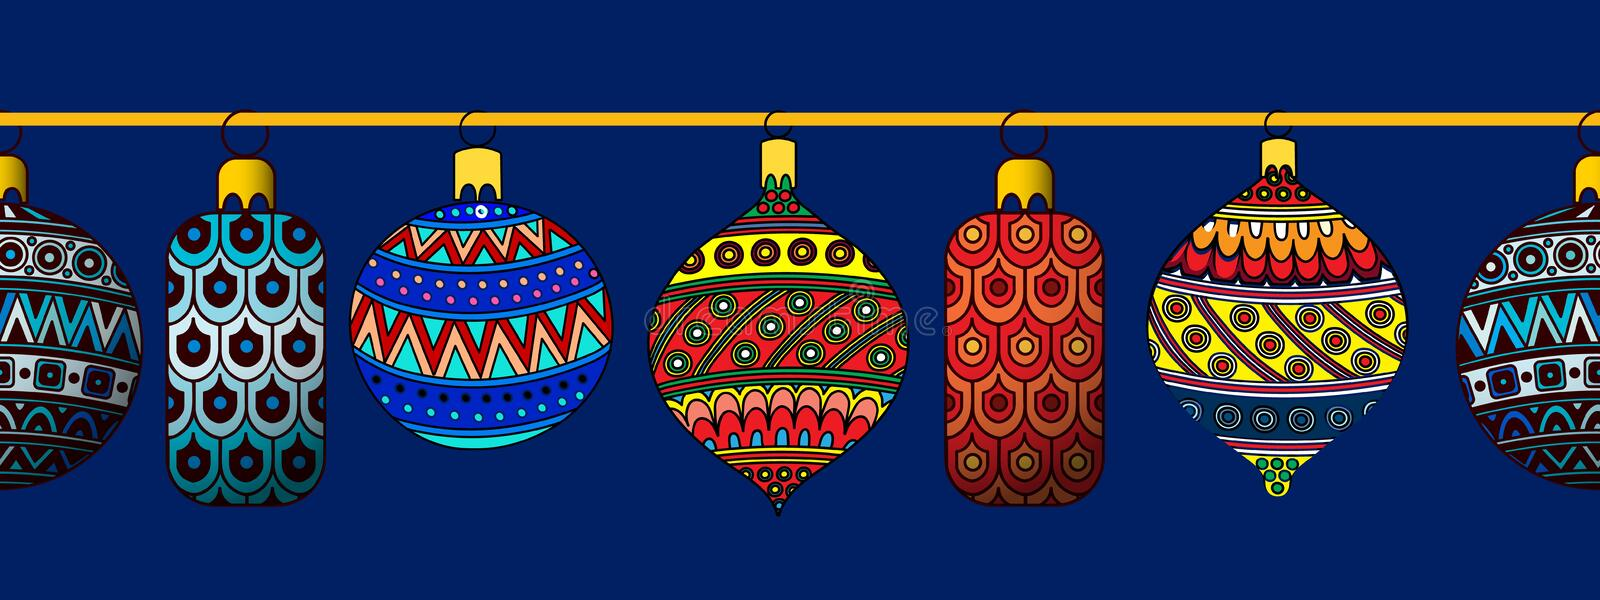 Set of festive Christmas toys. Vector illustration. stock image